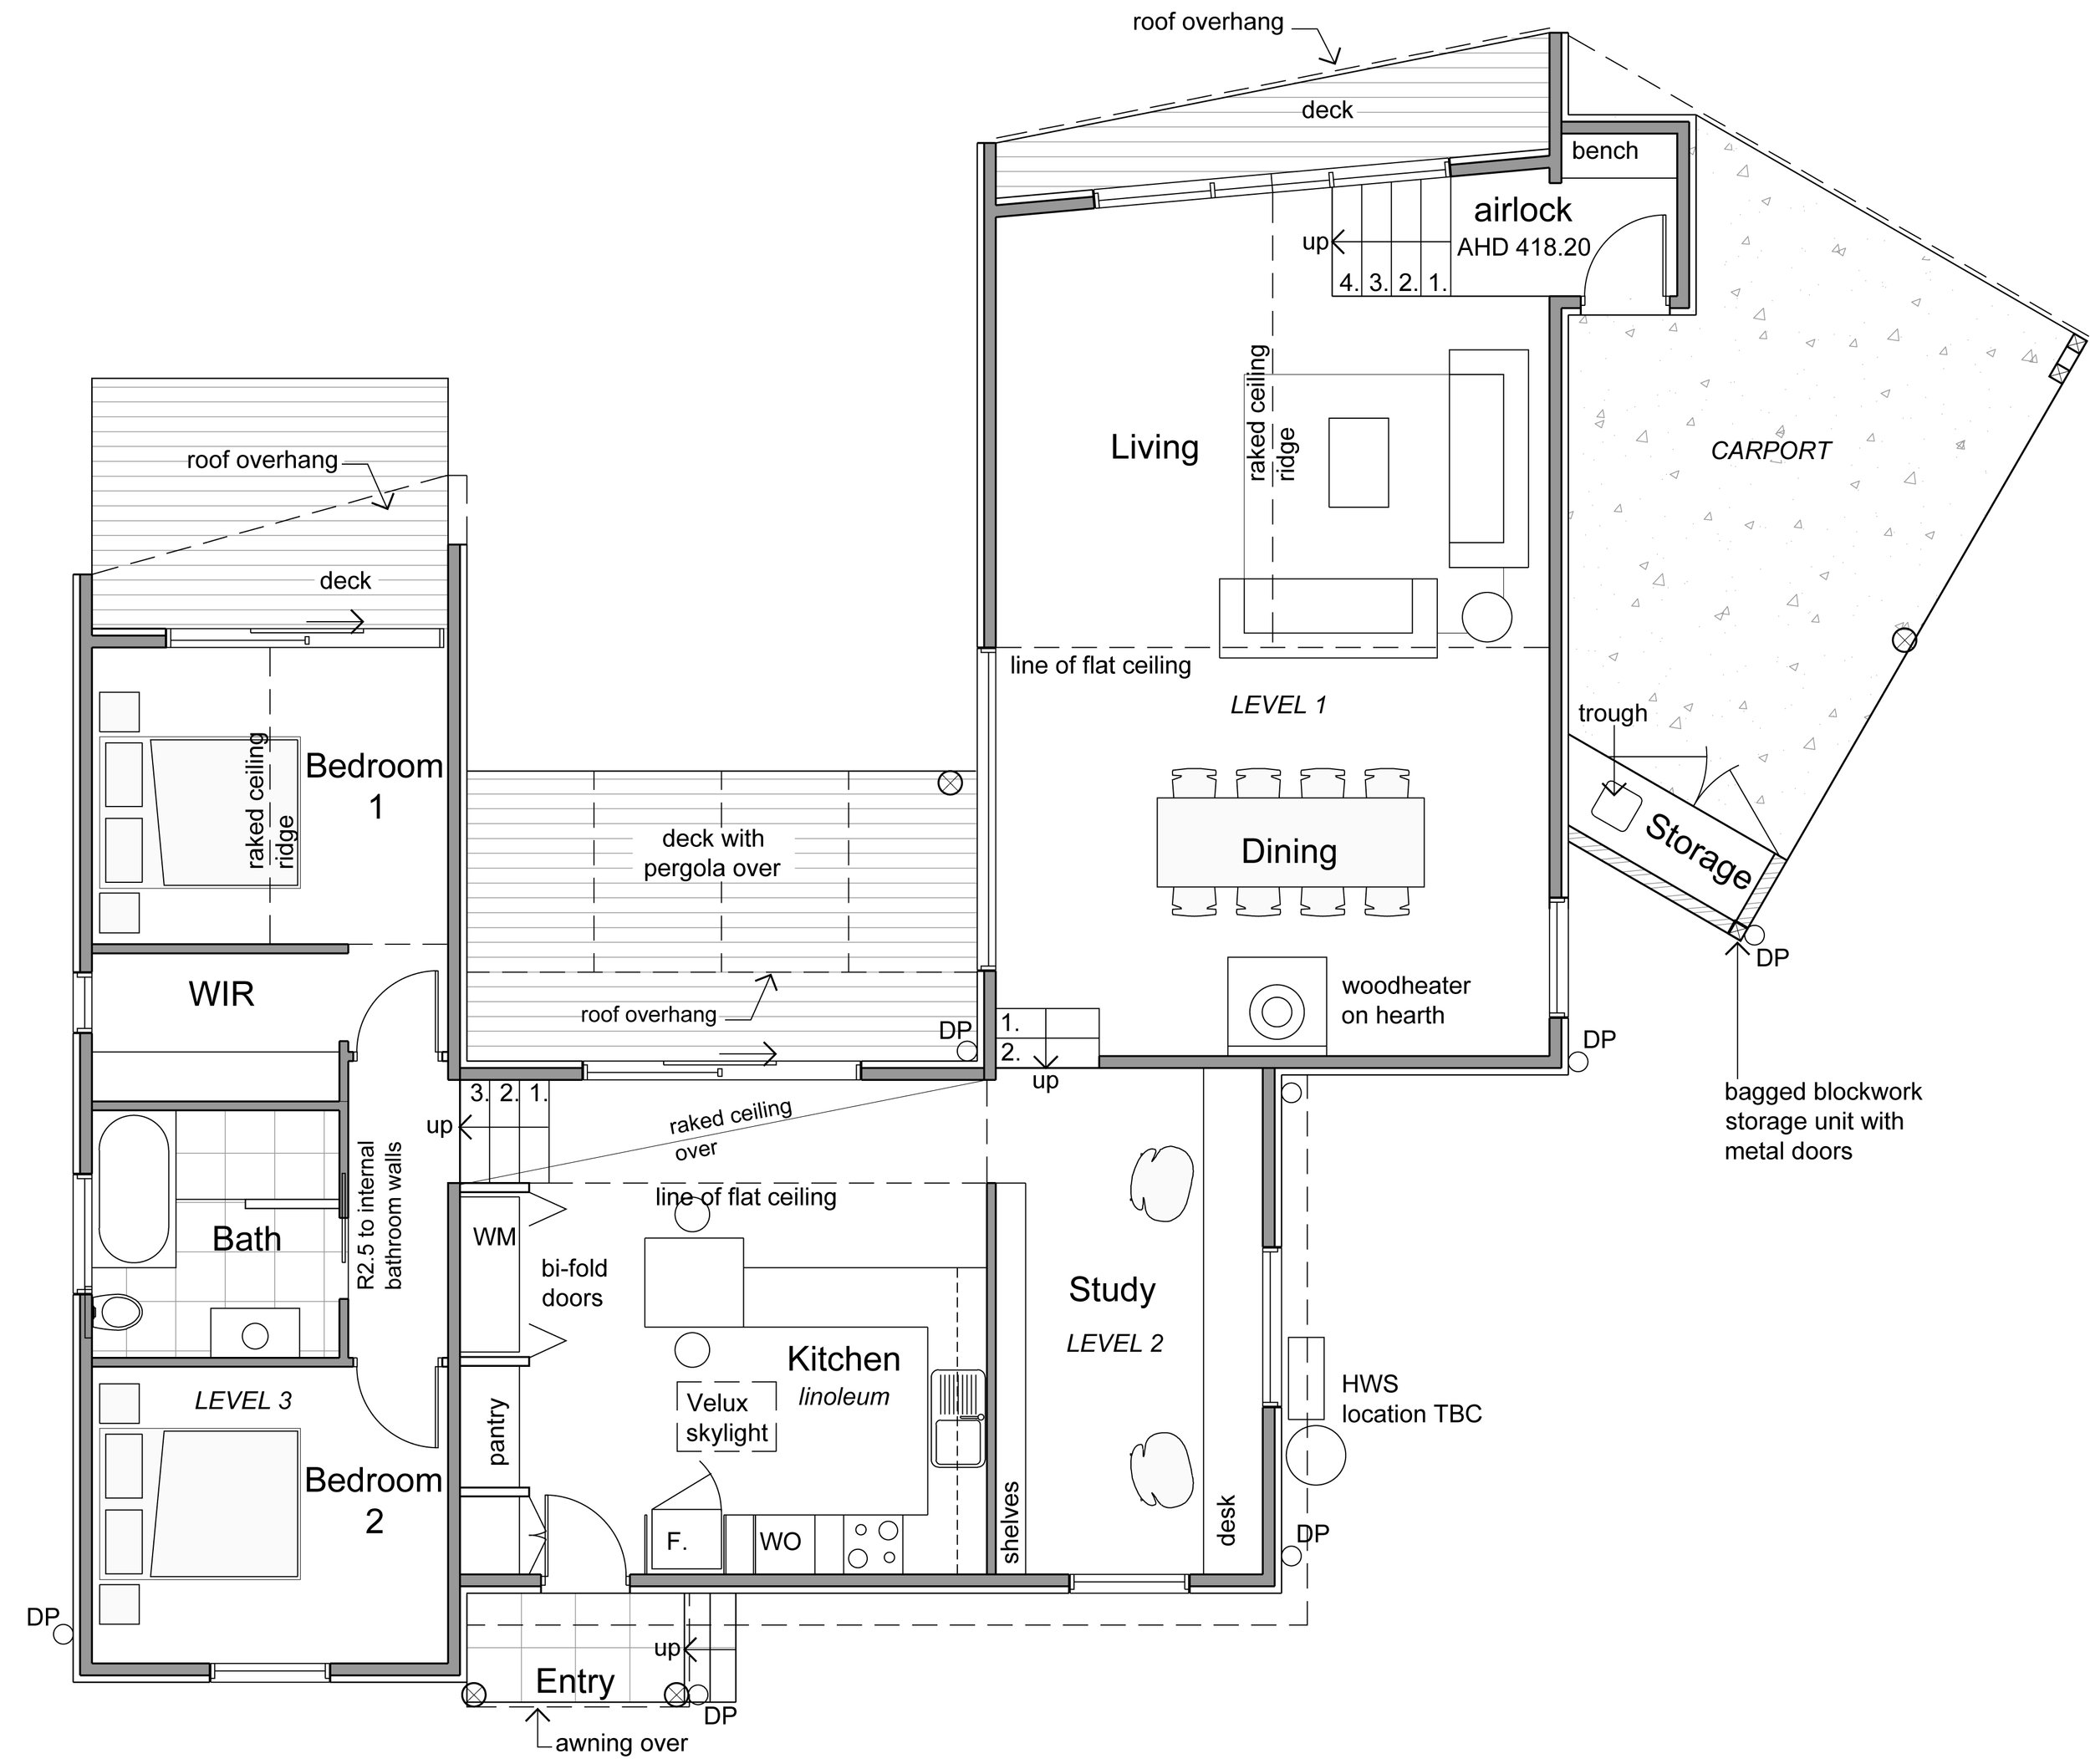 The split level plan is simple in its arrangement: sleeping and bathing on the upper level, kitchen and study on the central middle level, and living and dining on the larger lower level.